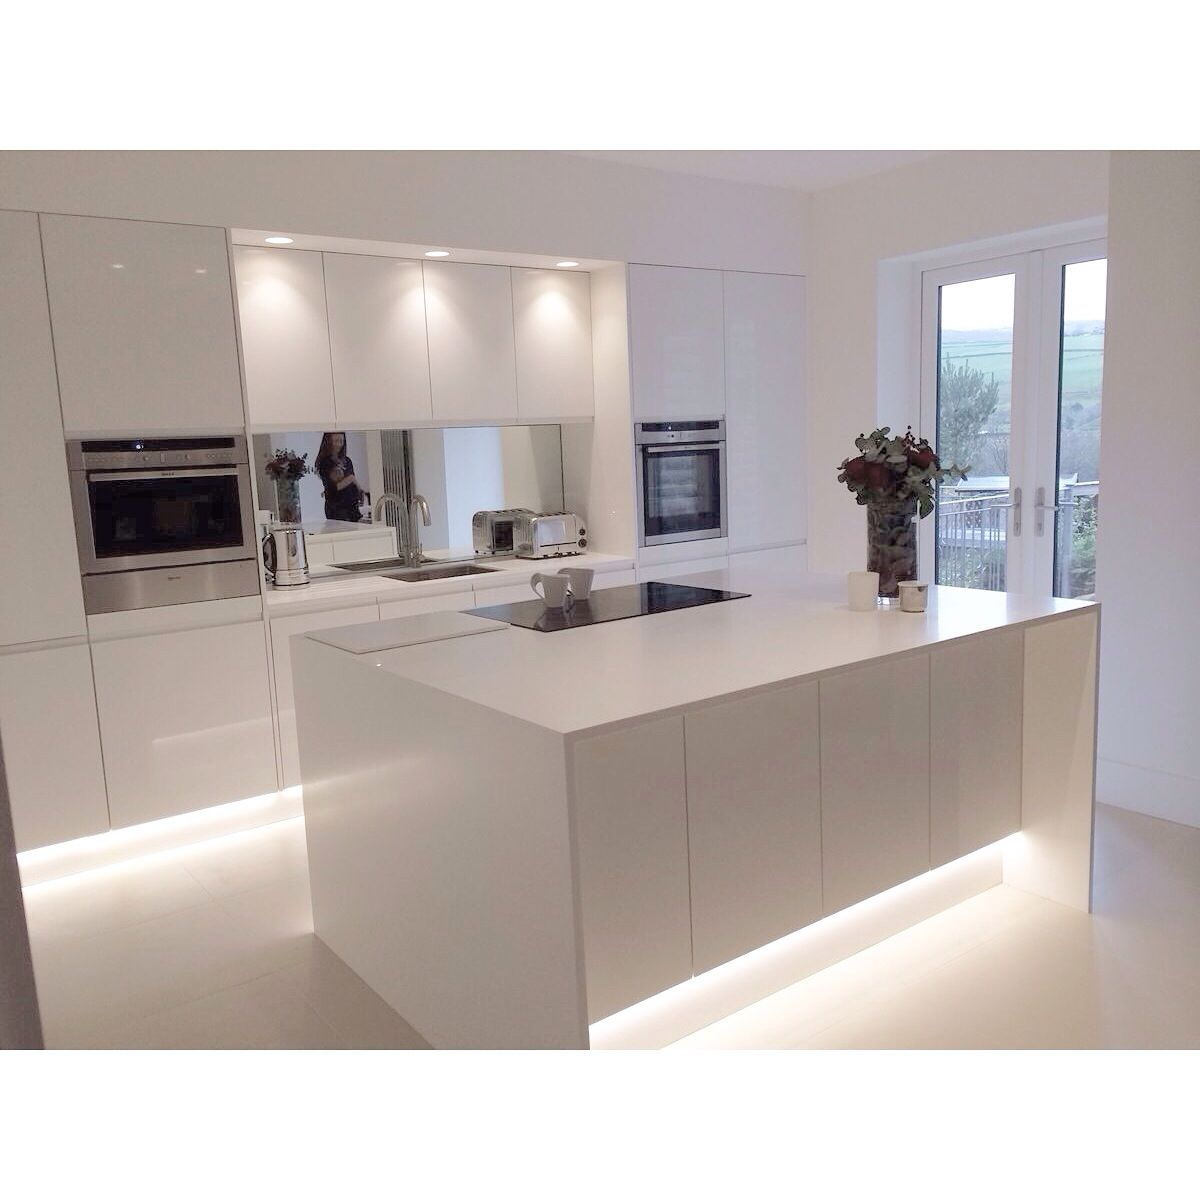 Modern white gloss integrated handle kitchen with 18mm corian wrap and worktops design by hollyanna